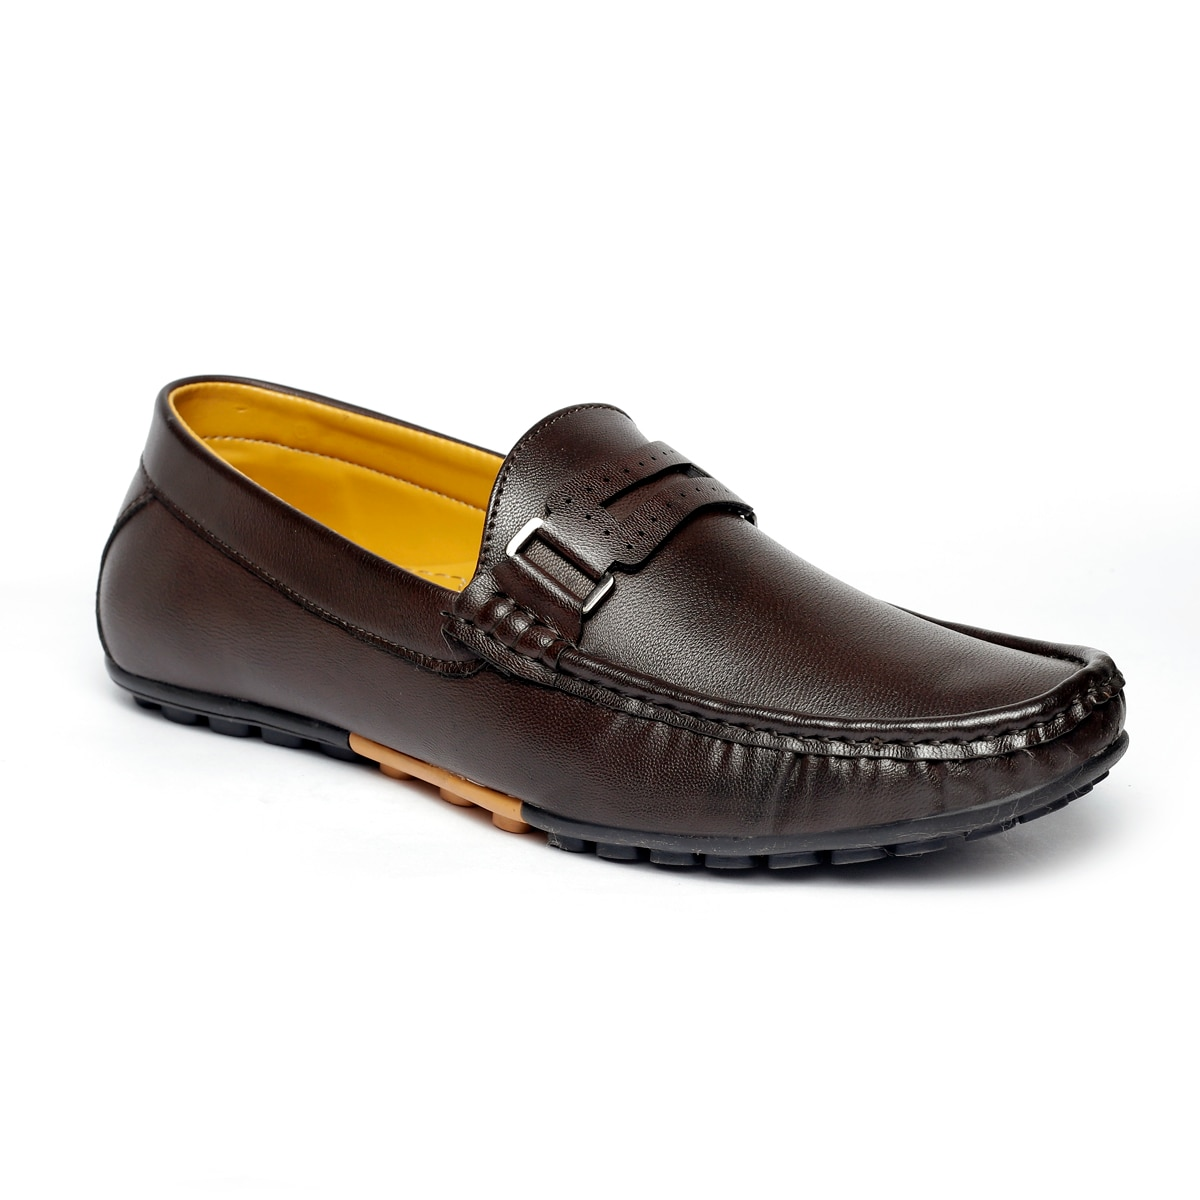 JK PORT COMFORTABLE, FASHIONABLE AND TRENDY LOAFERS JKPLF037BRN (BROWN,6-10,8 PAIR)